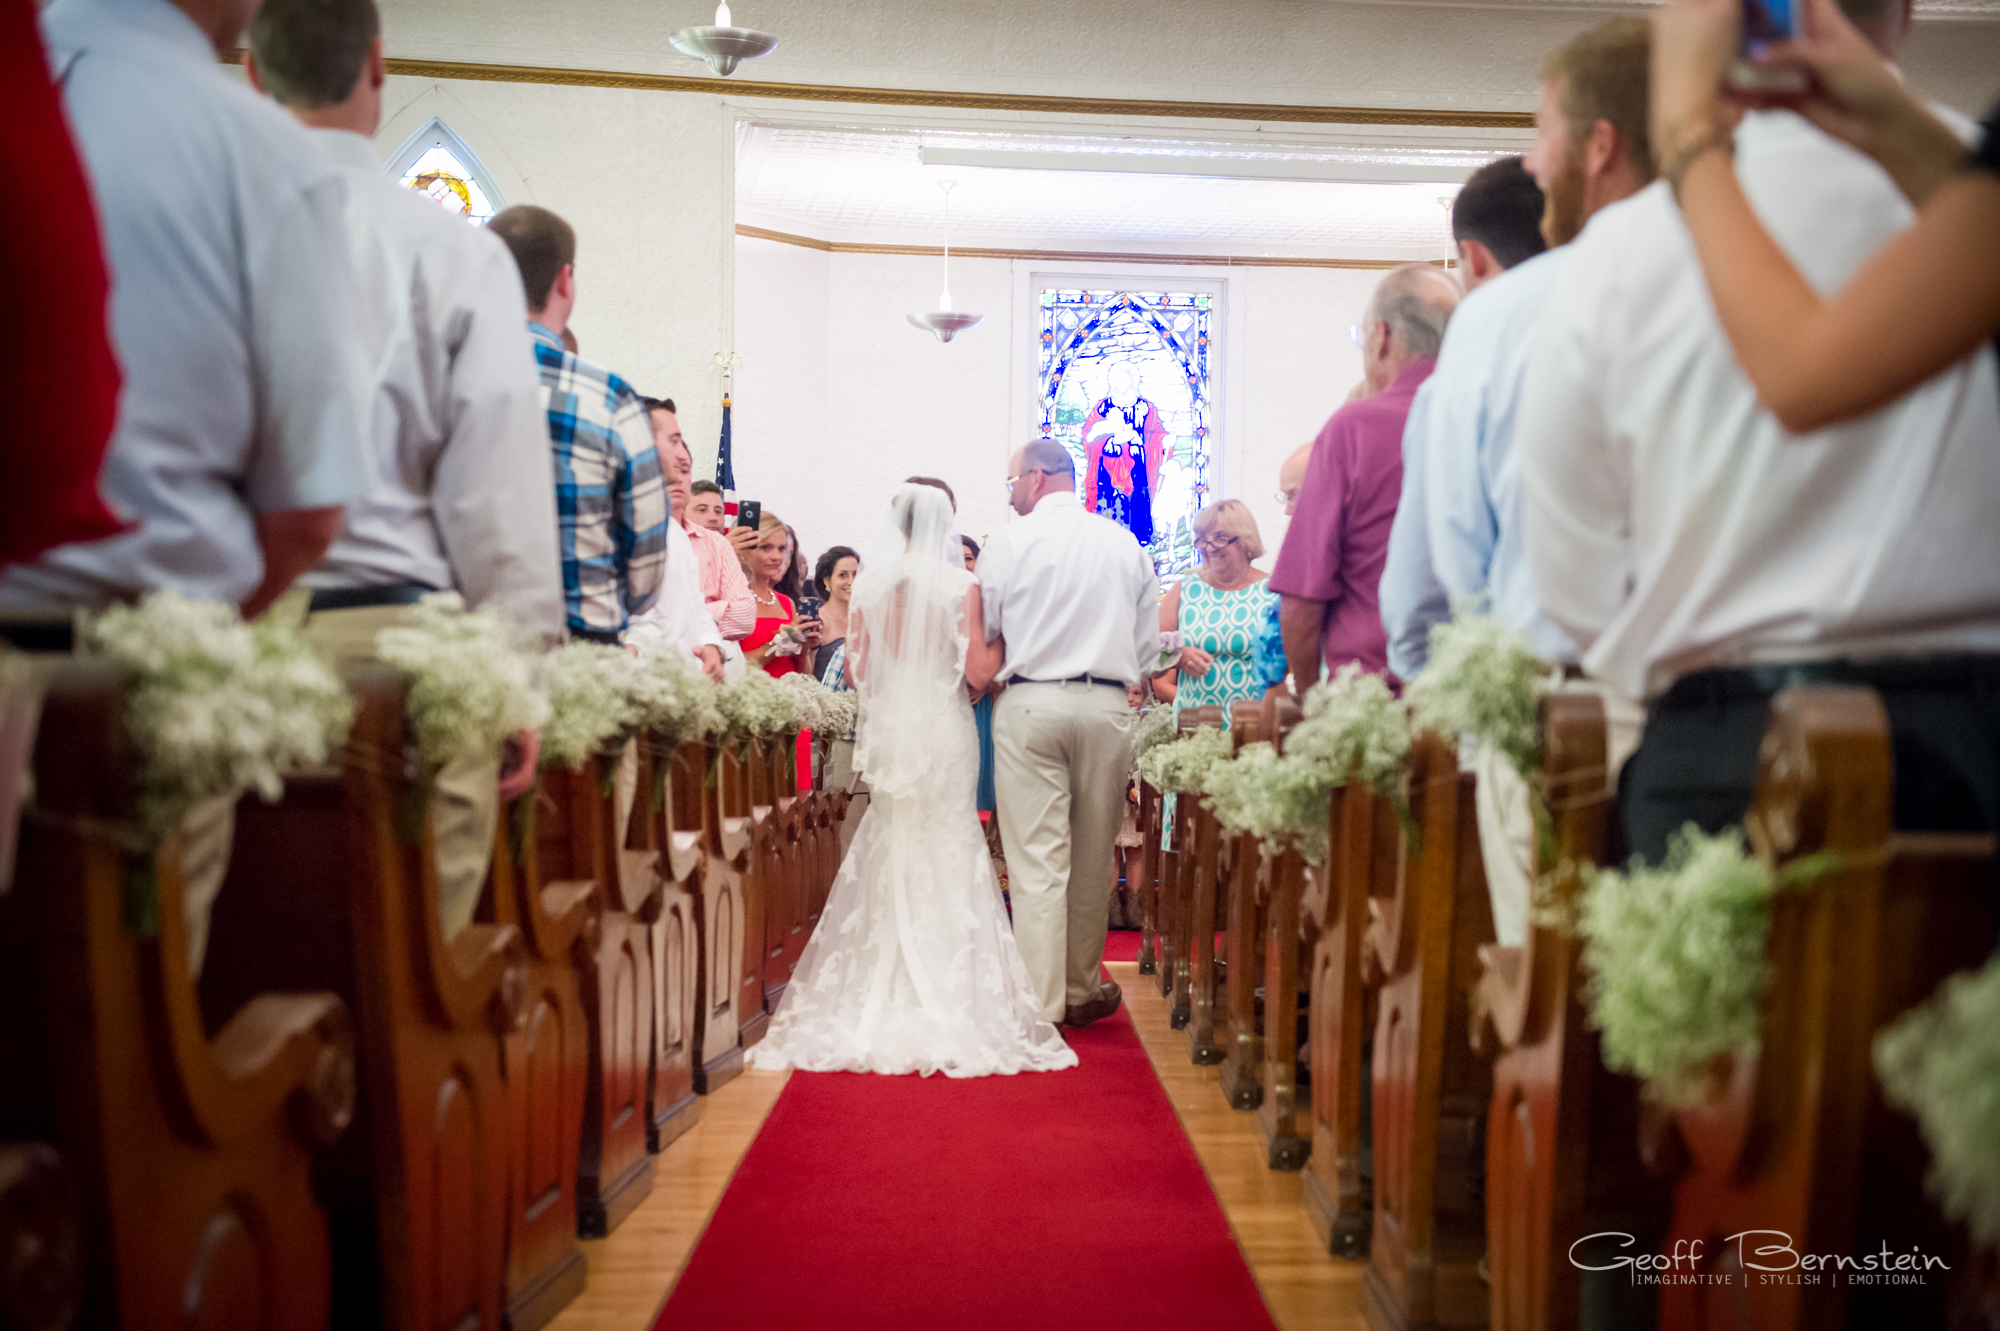 0214_PhillipsWedding_WED_GBPhoto_20150613.jpg